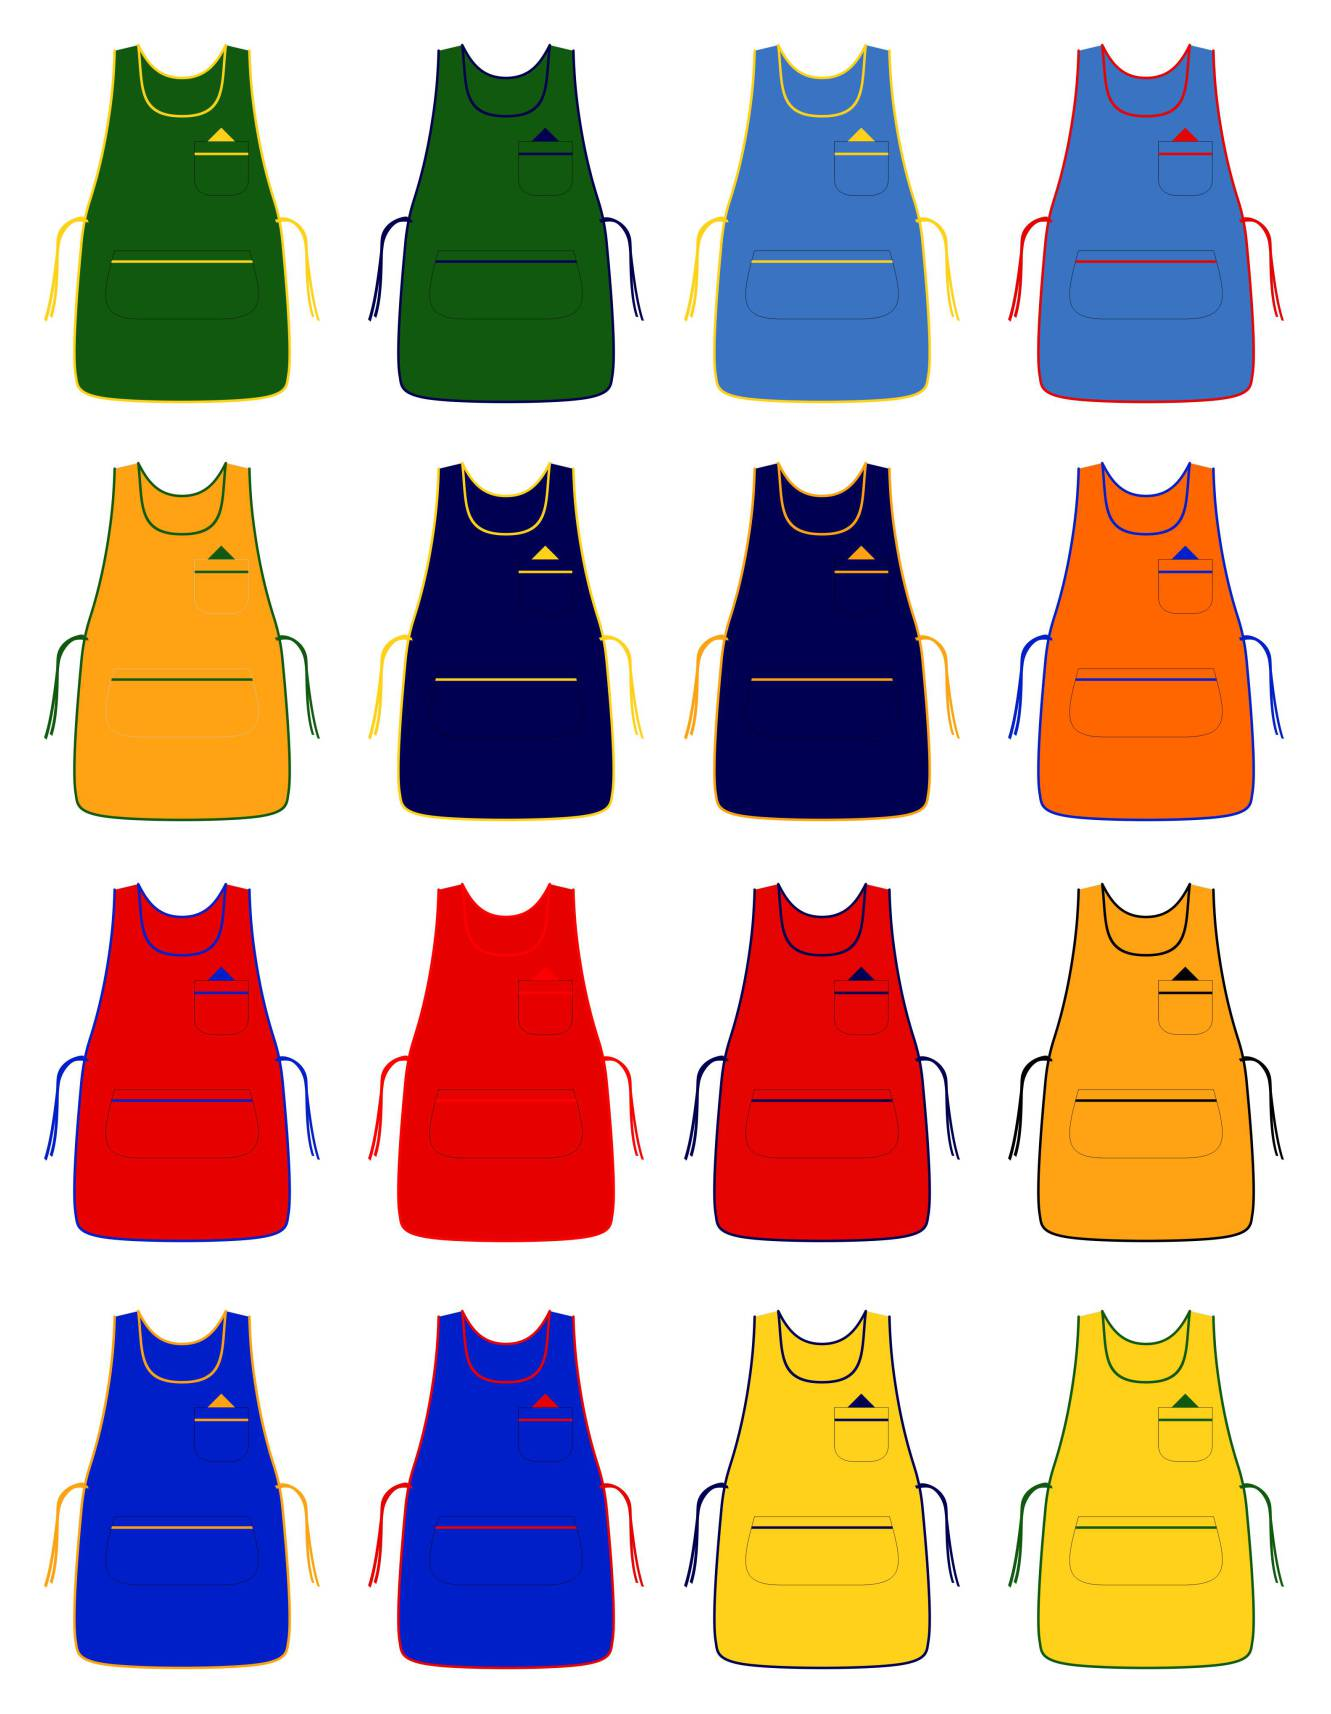 White tabard apron - Colored Tabard Apron With Colored Pipping Zoom Icon